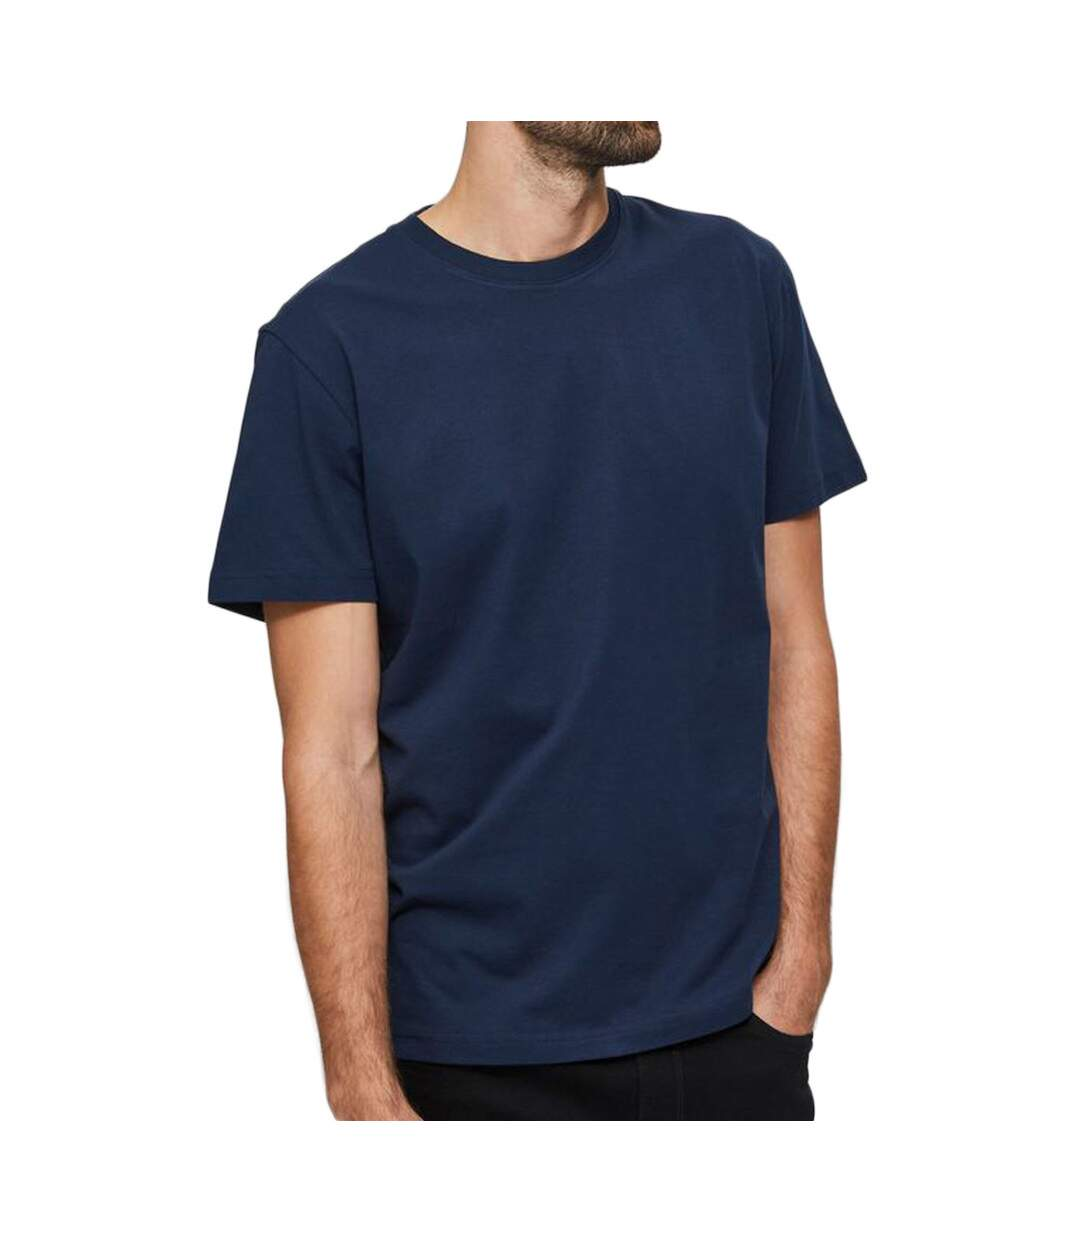 T-Shirt marine homme Selected SLHNORMAN180